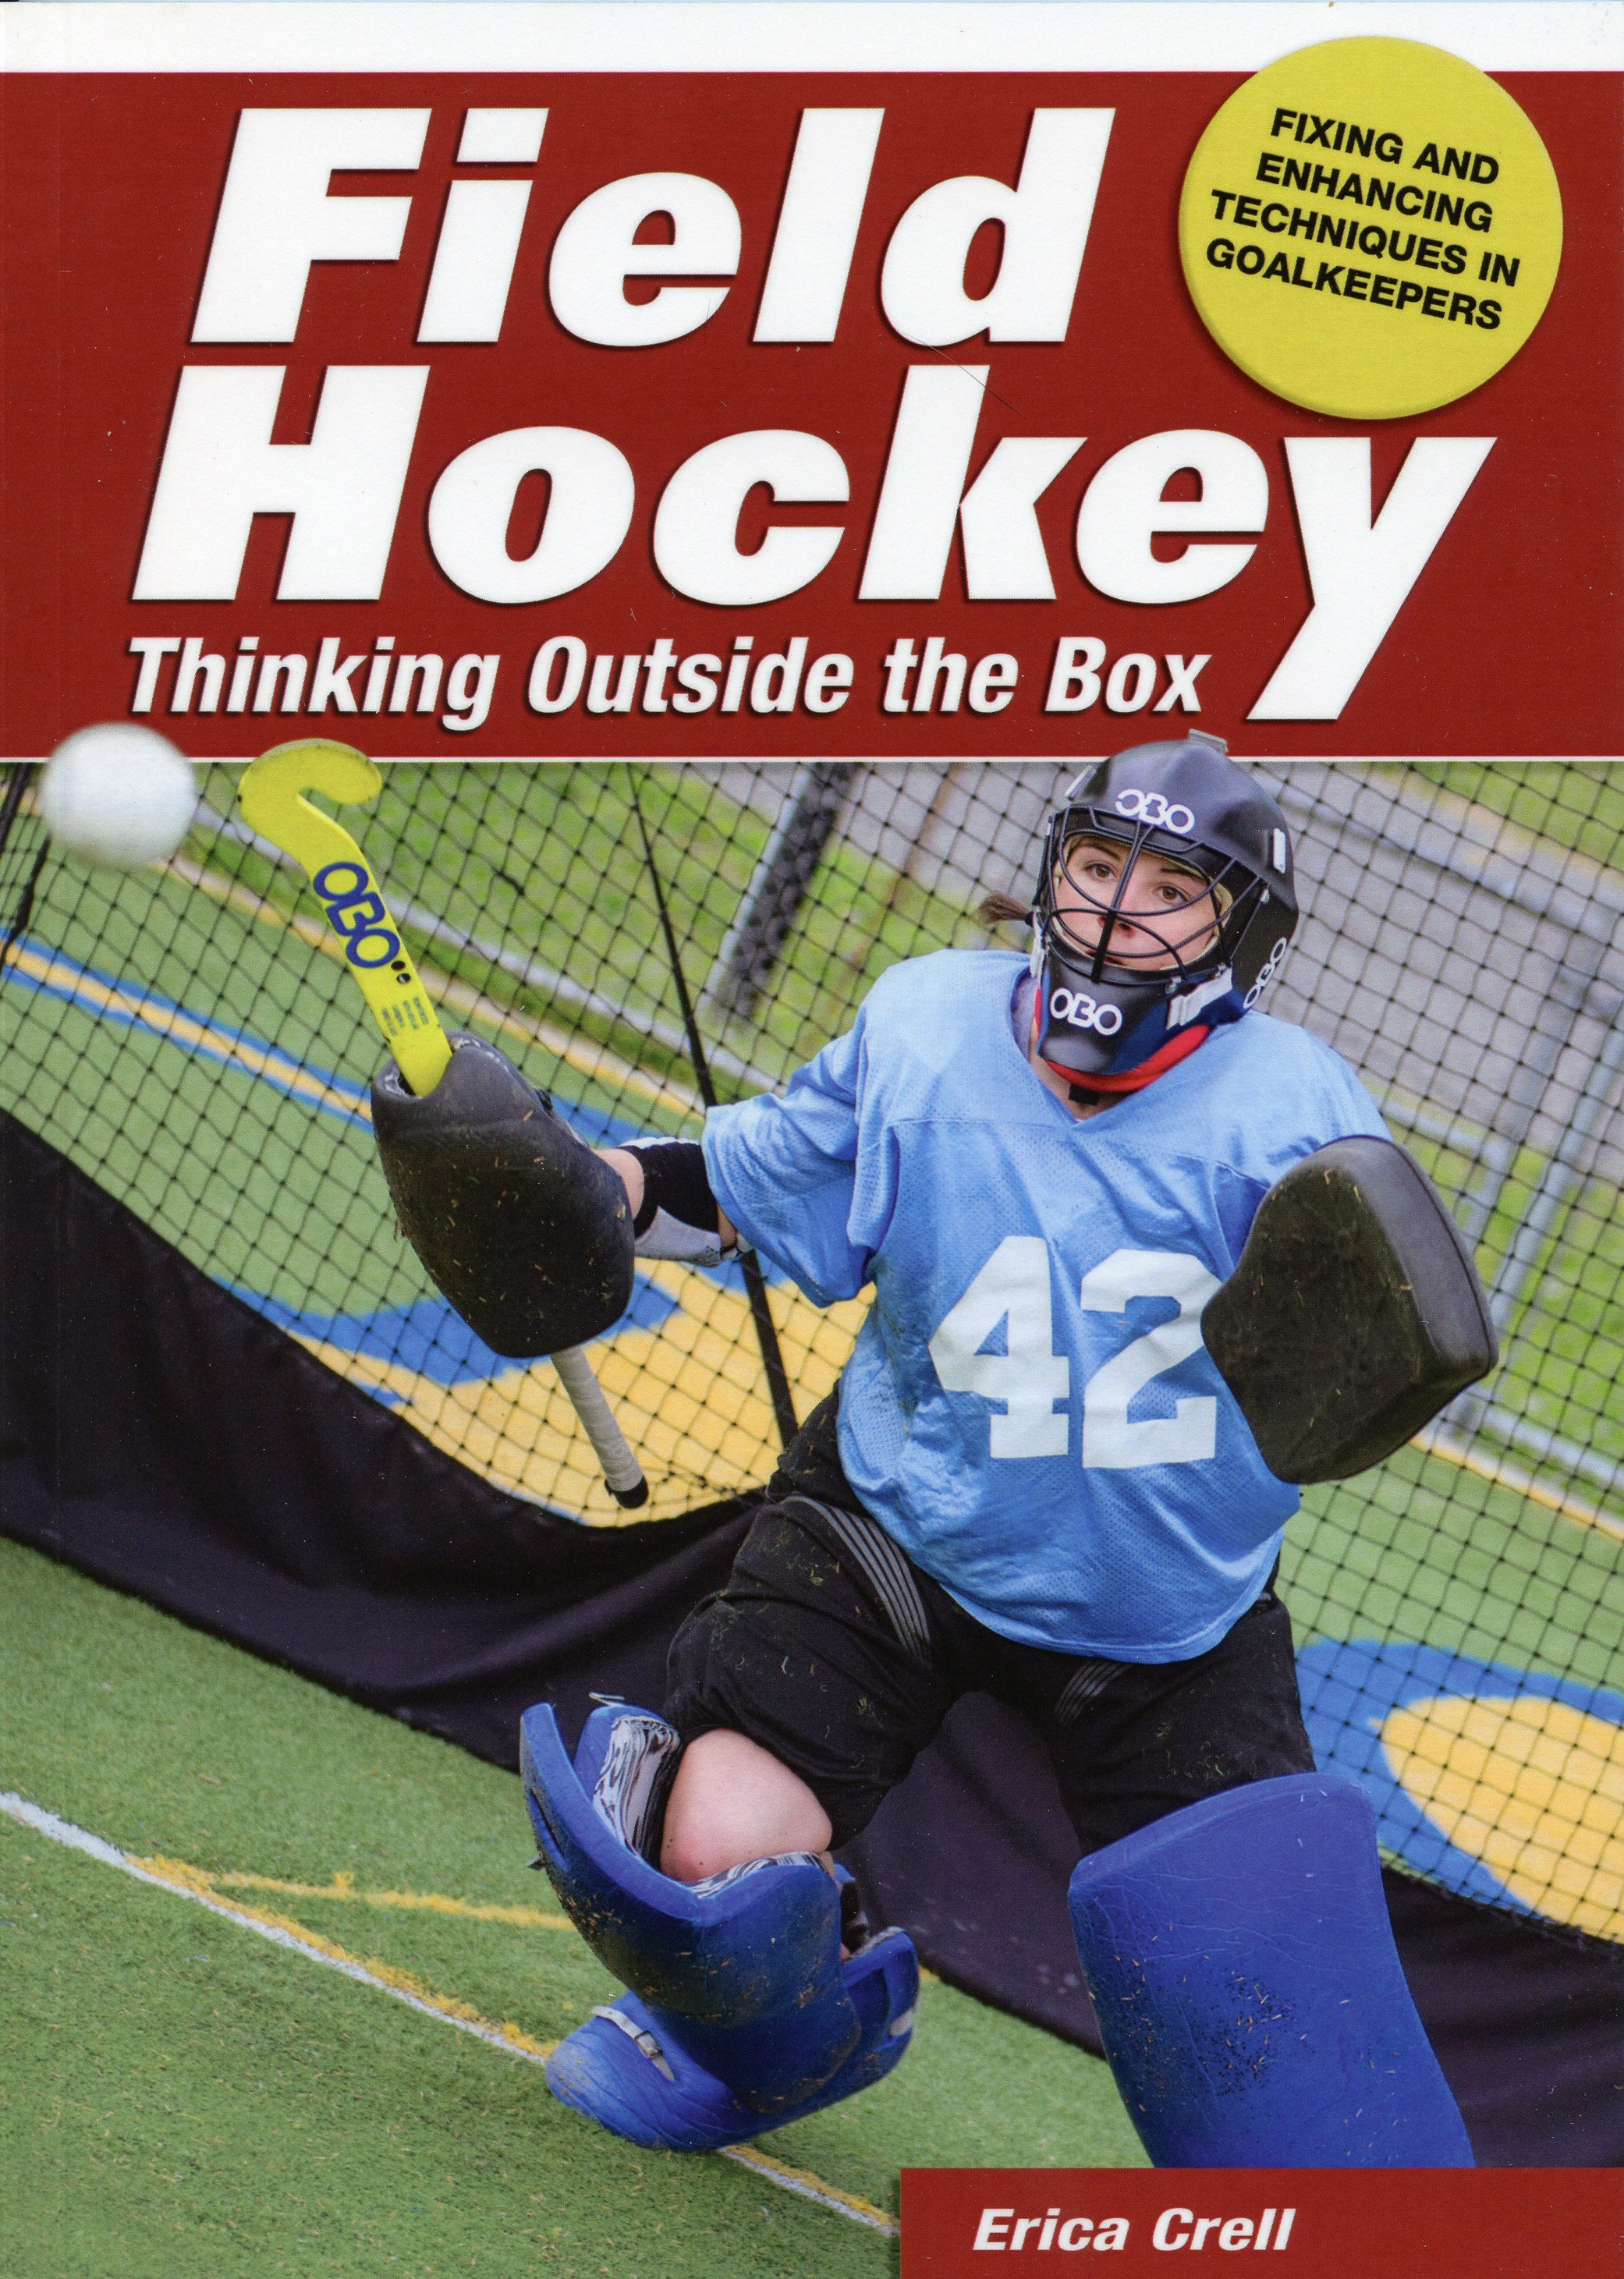 """A creative approach to that problem we all deal with: how do we tweak a goalkeeper's bad habits and reinforce improved technique? The outside-the-box drills and tips gave me some new ideas where the same old drills weren't working. Thanks for sharing your knowledge!"" -- Nicky Hitchens, Associate Head Field Hockey Coach, Drexel University  by Erica Crell ISBN: 978-1930546-23-3 $12.95 Published in 2015"